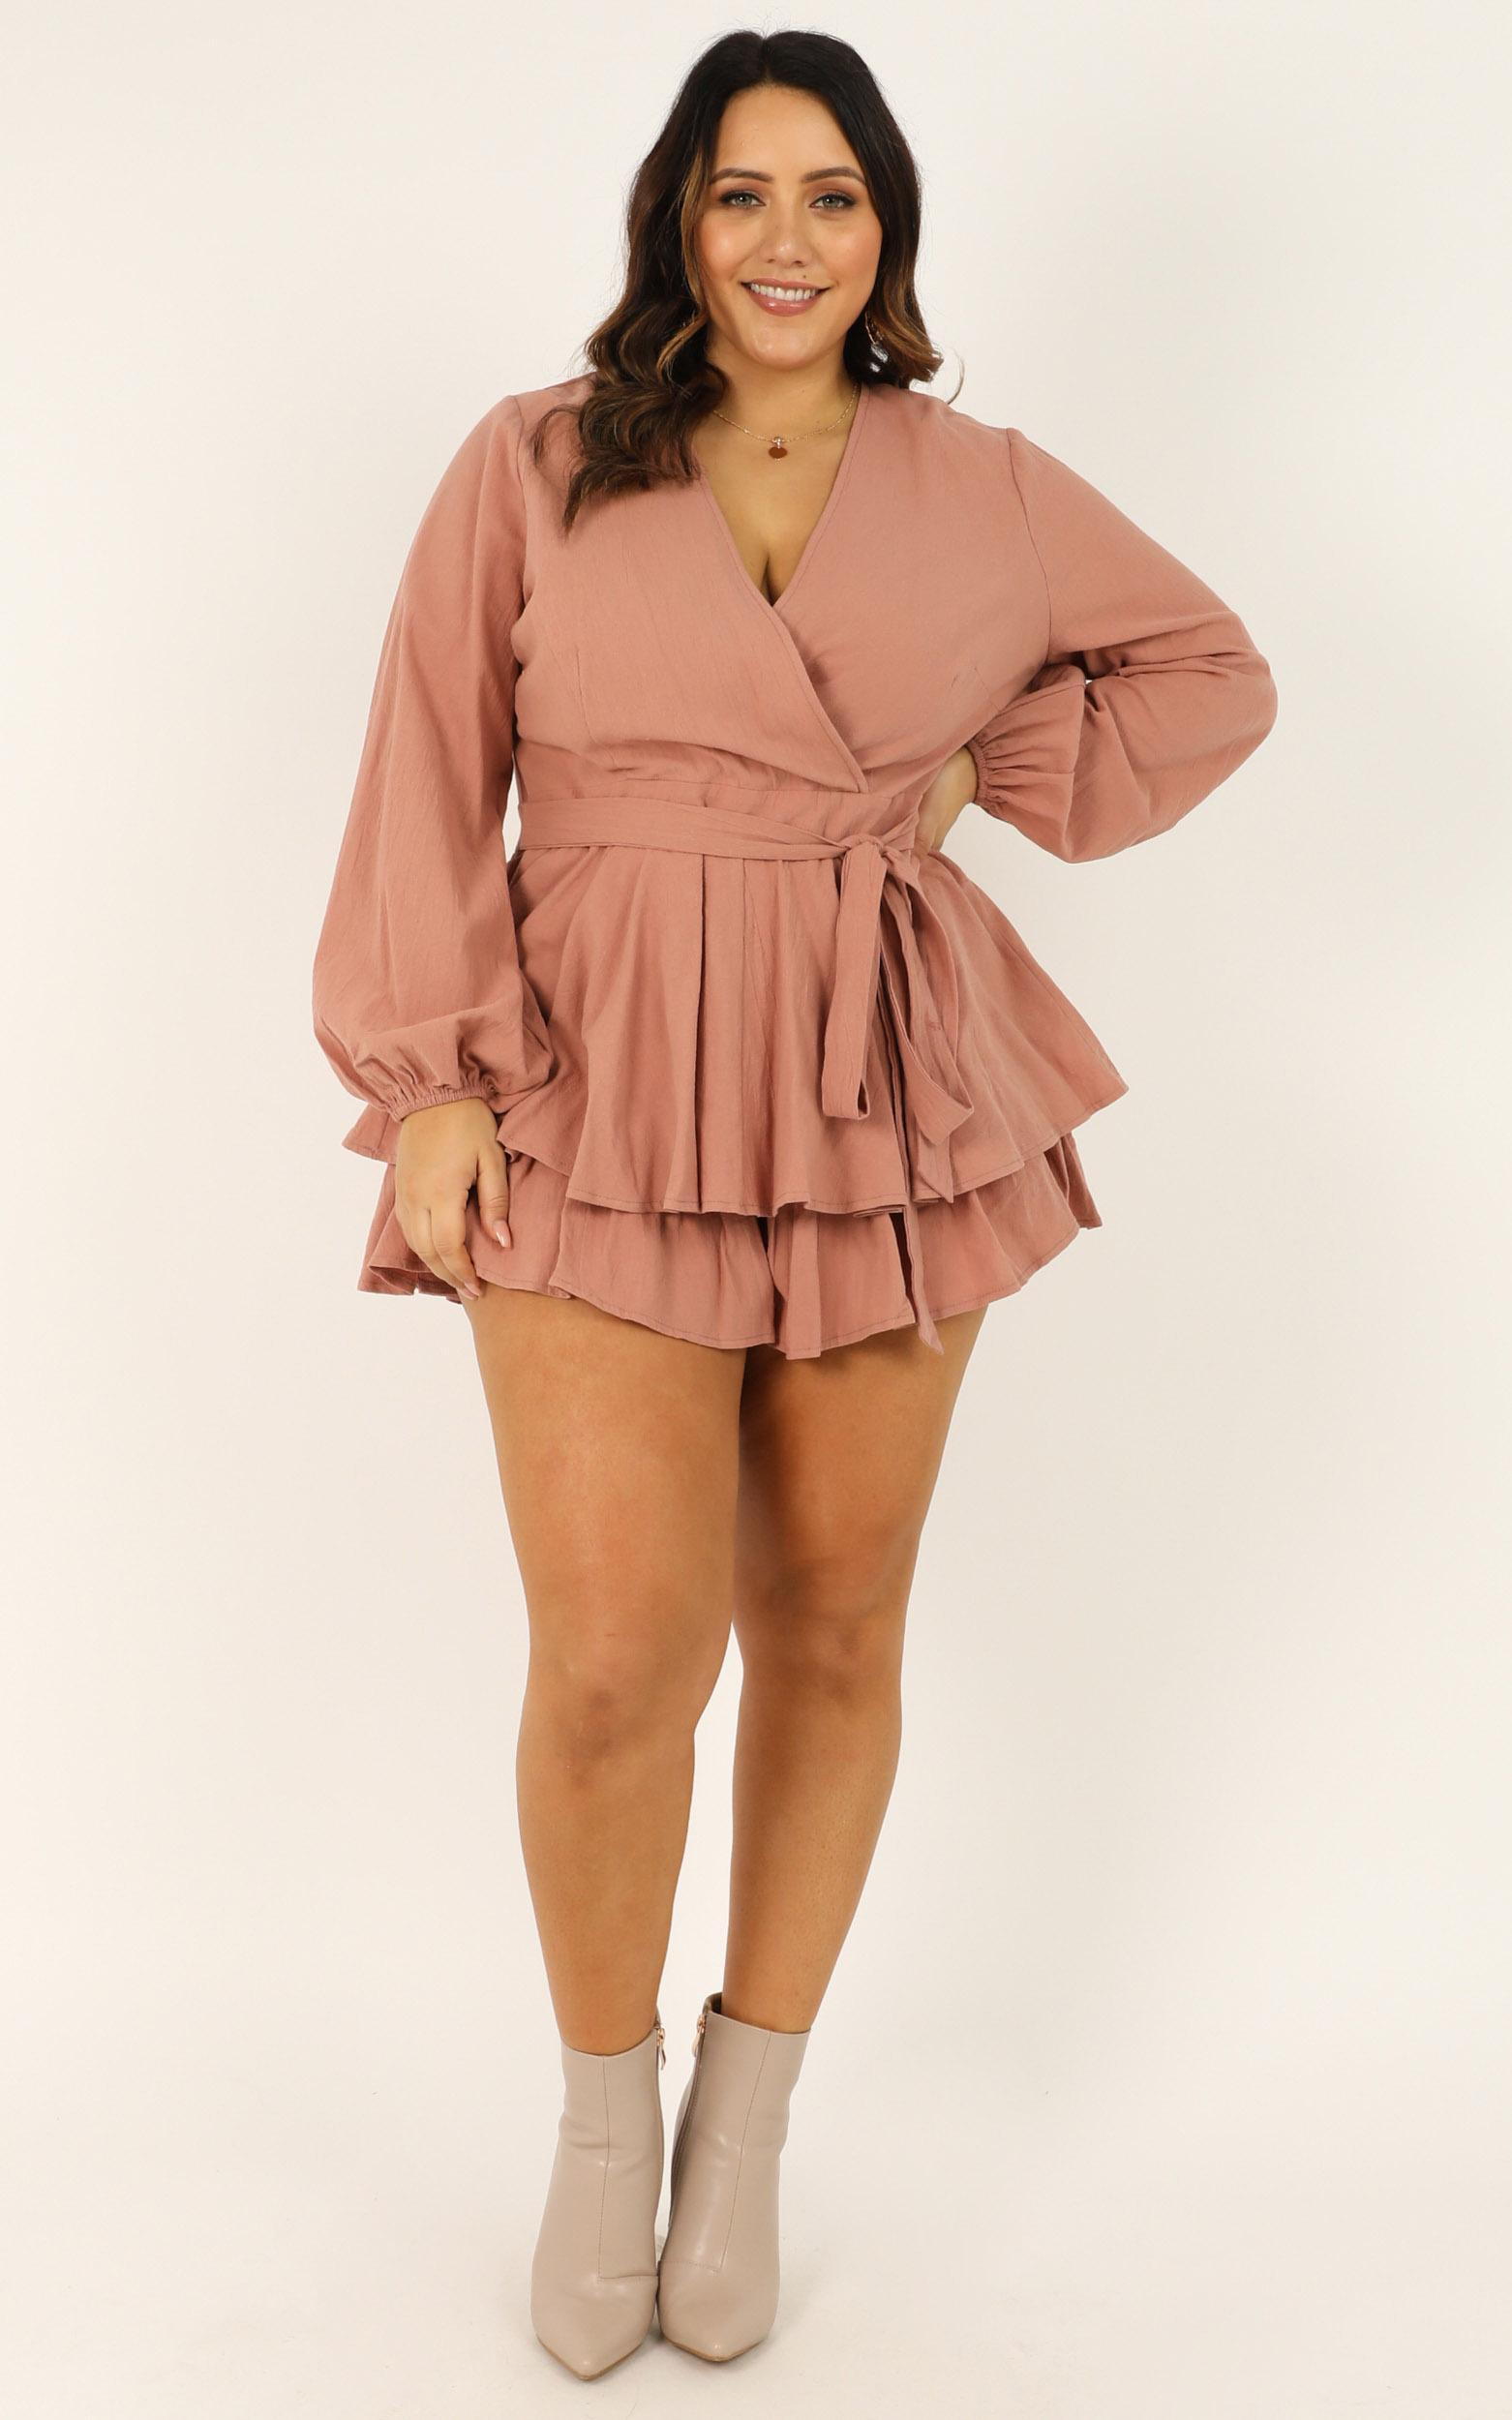 Wandering Around Playsuit in dusty rose linen look - 20 (XXXXL), Blush, hi-res image number null